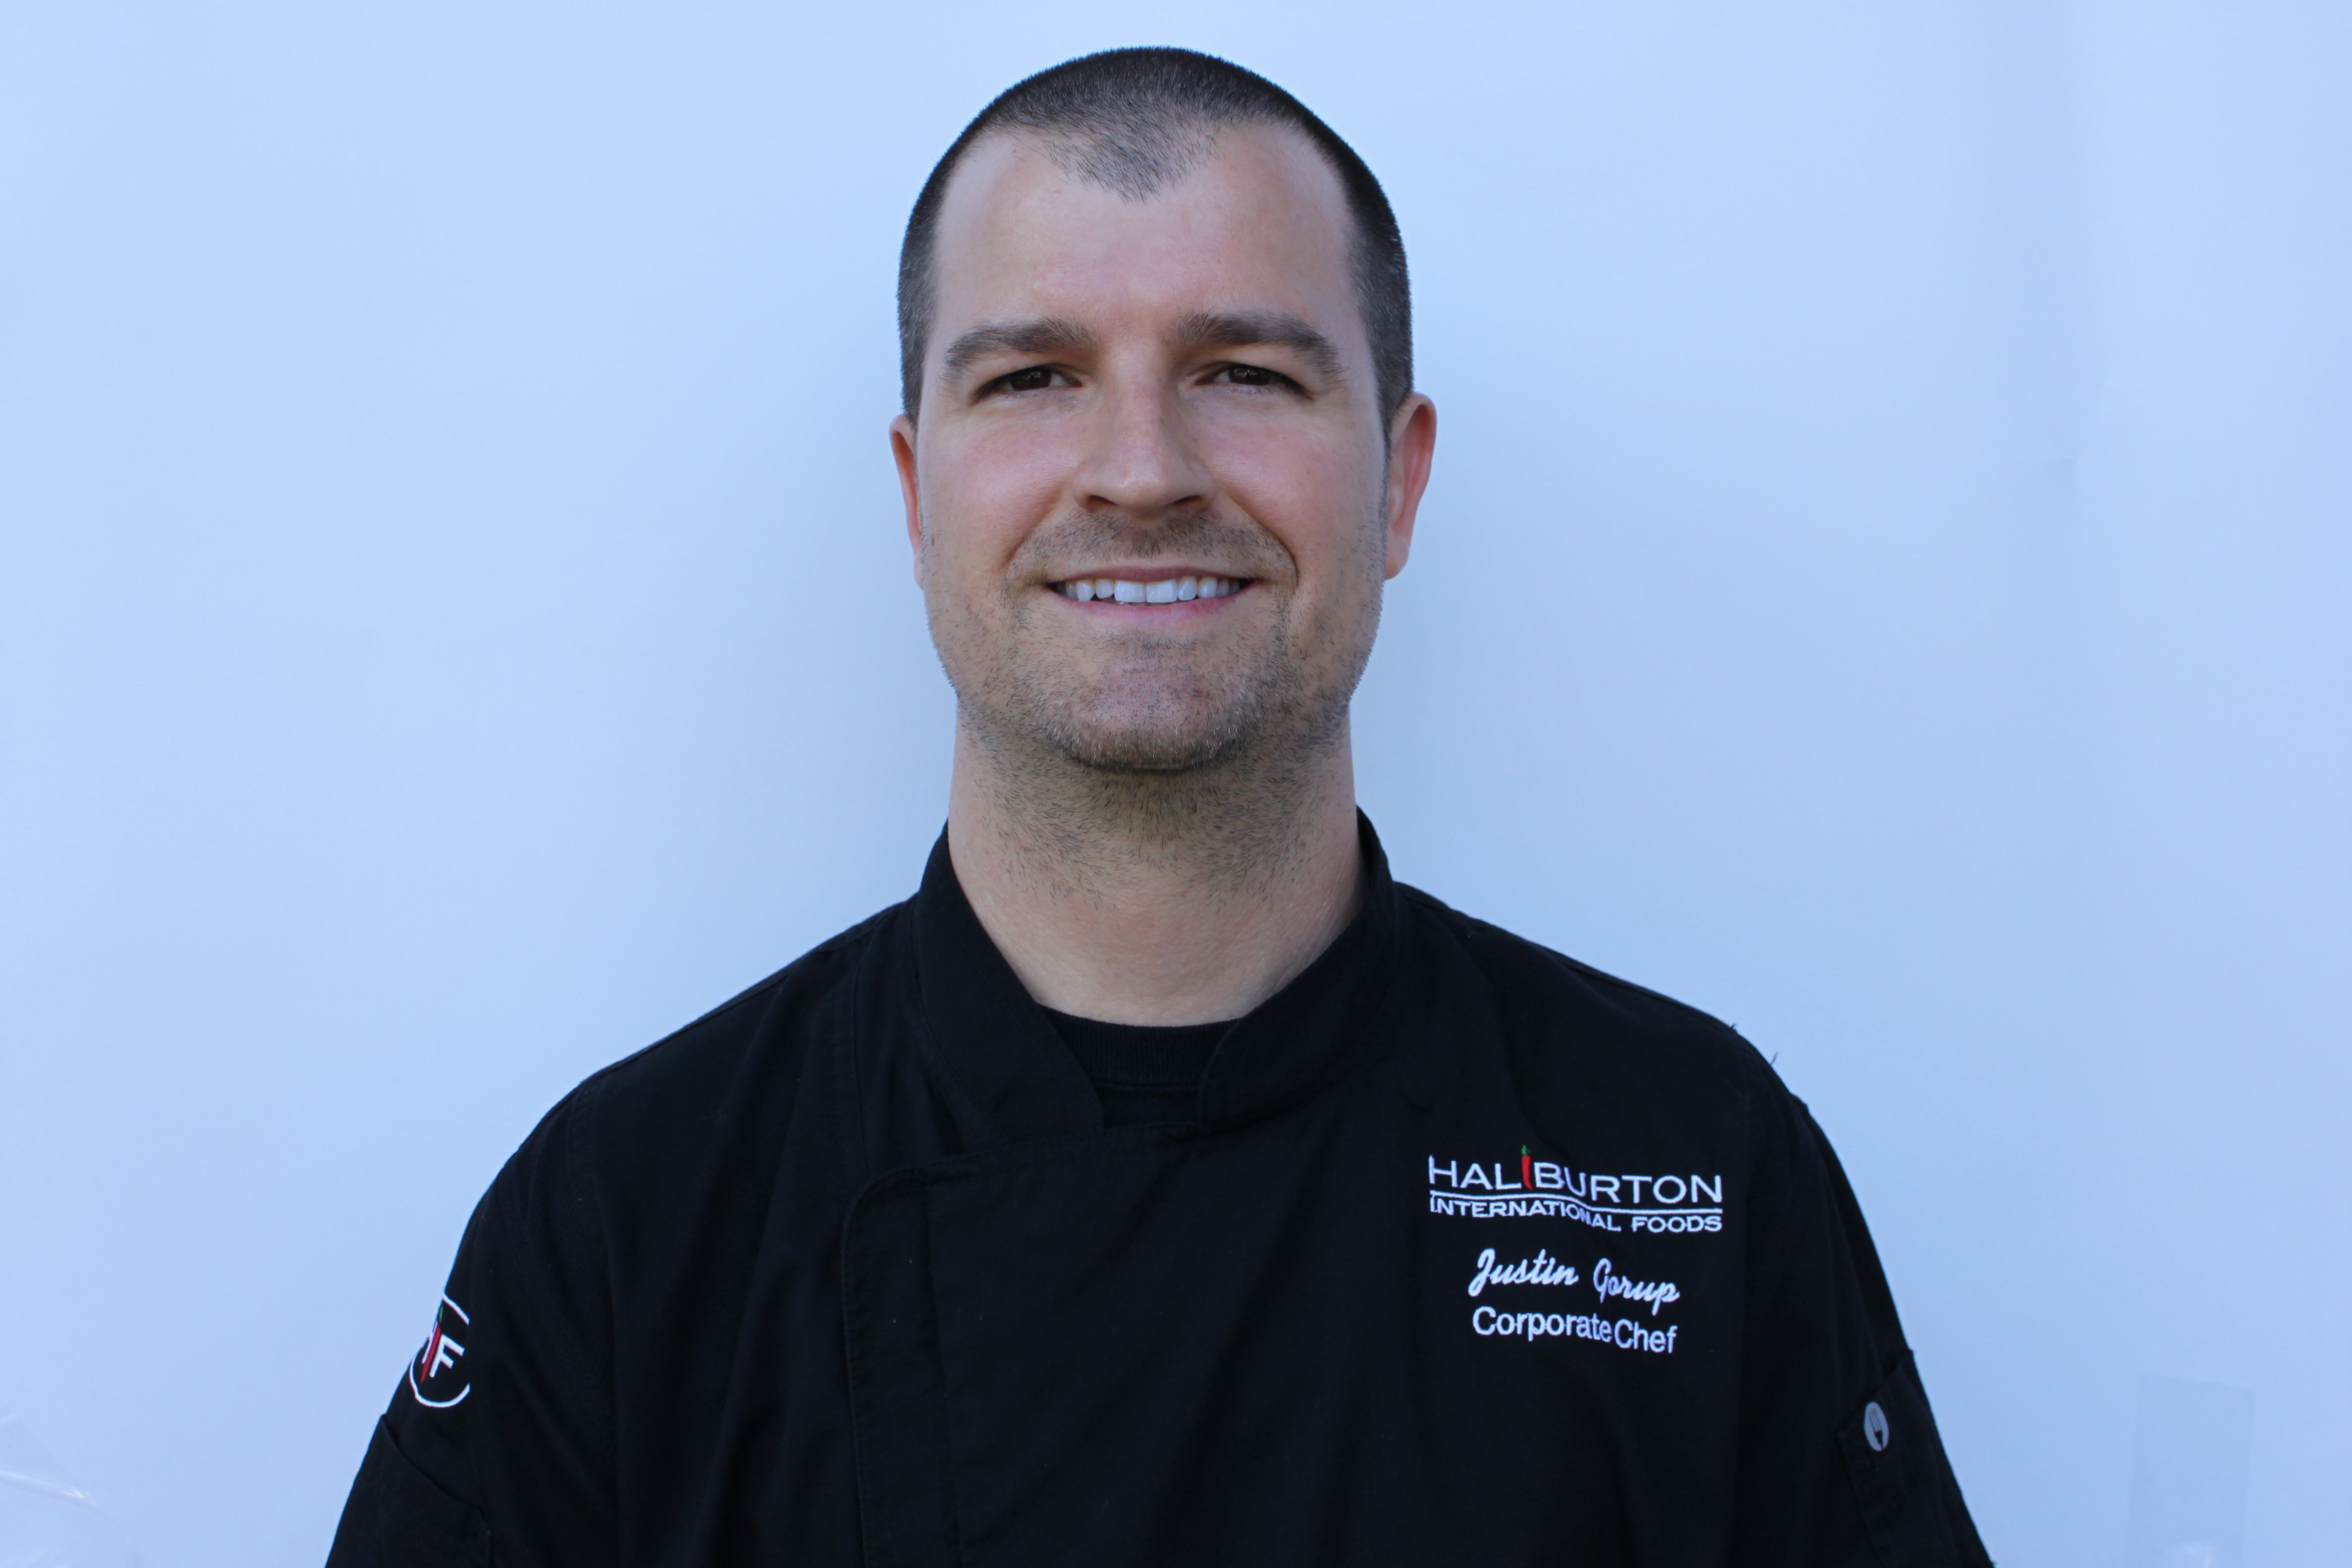 Justin Gorup, Corporate Chef